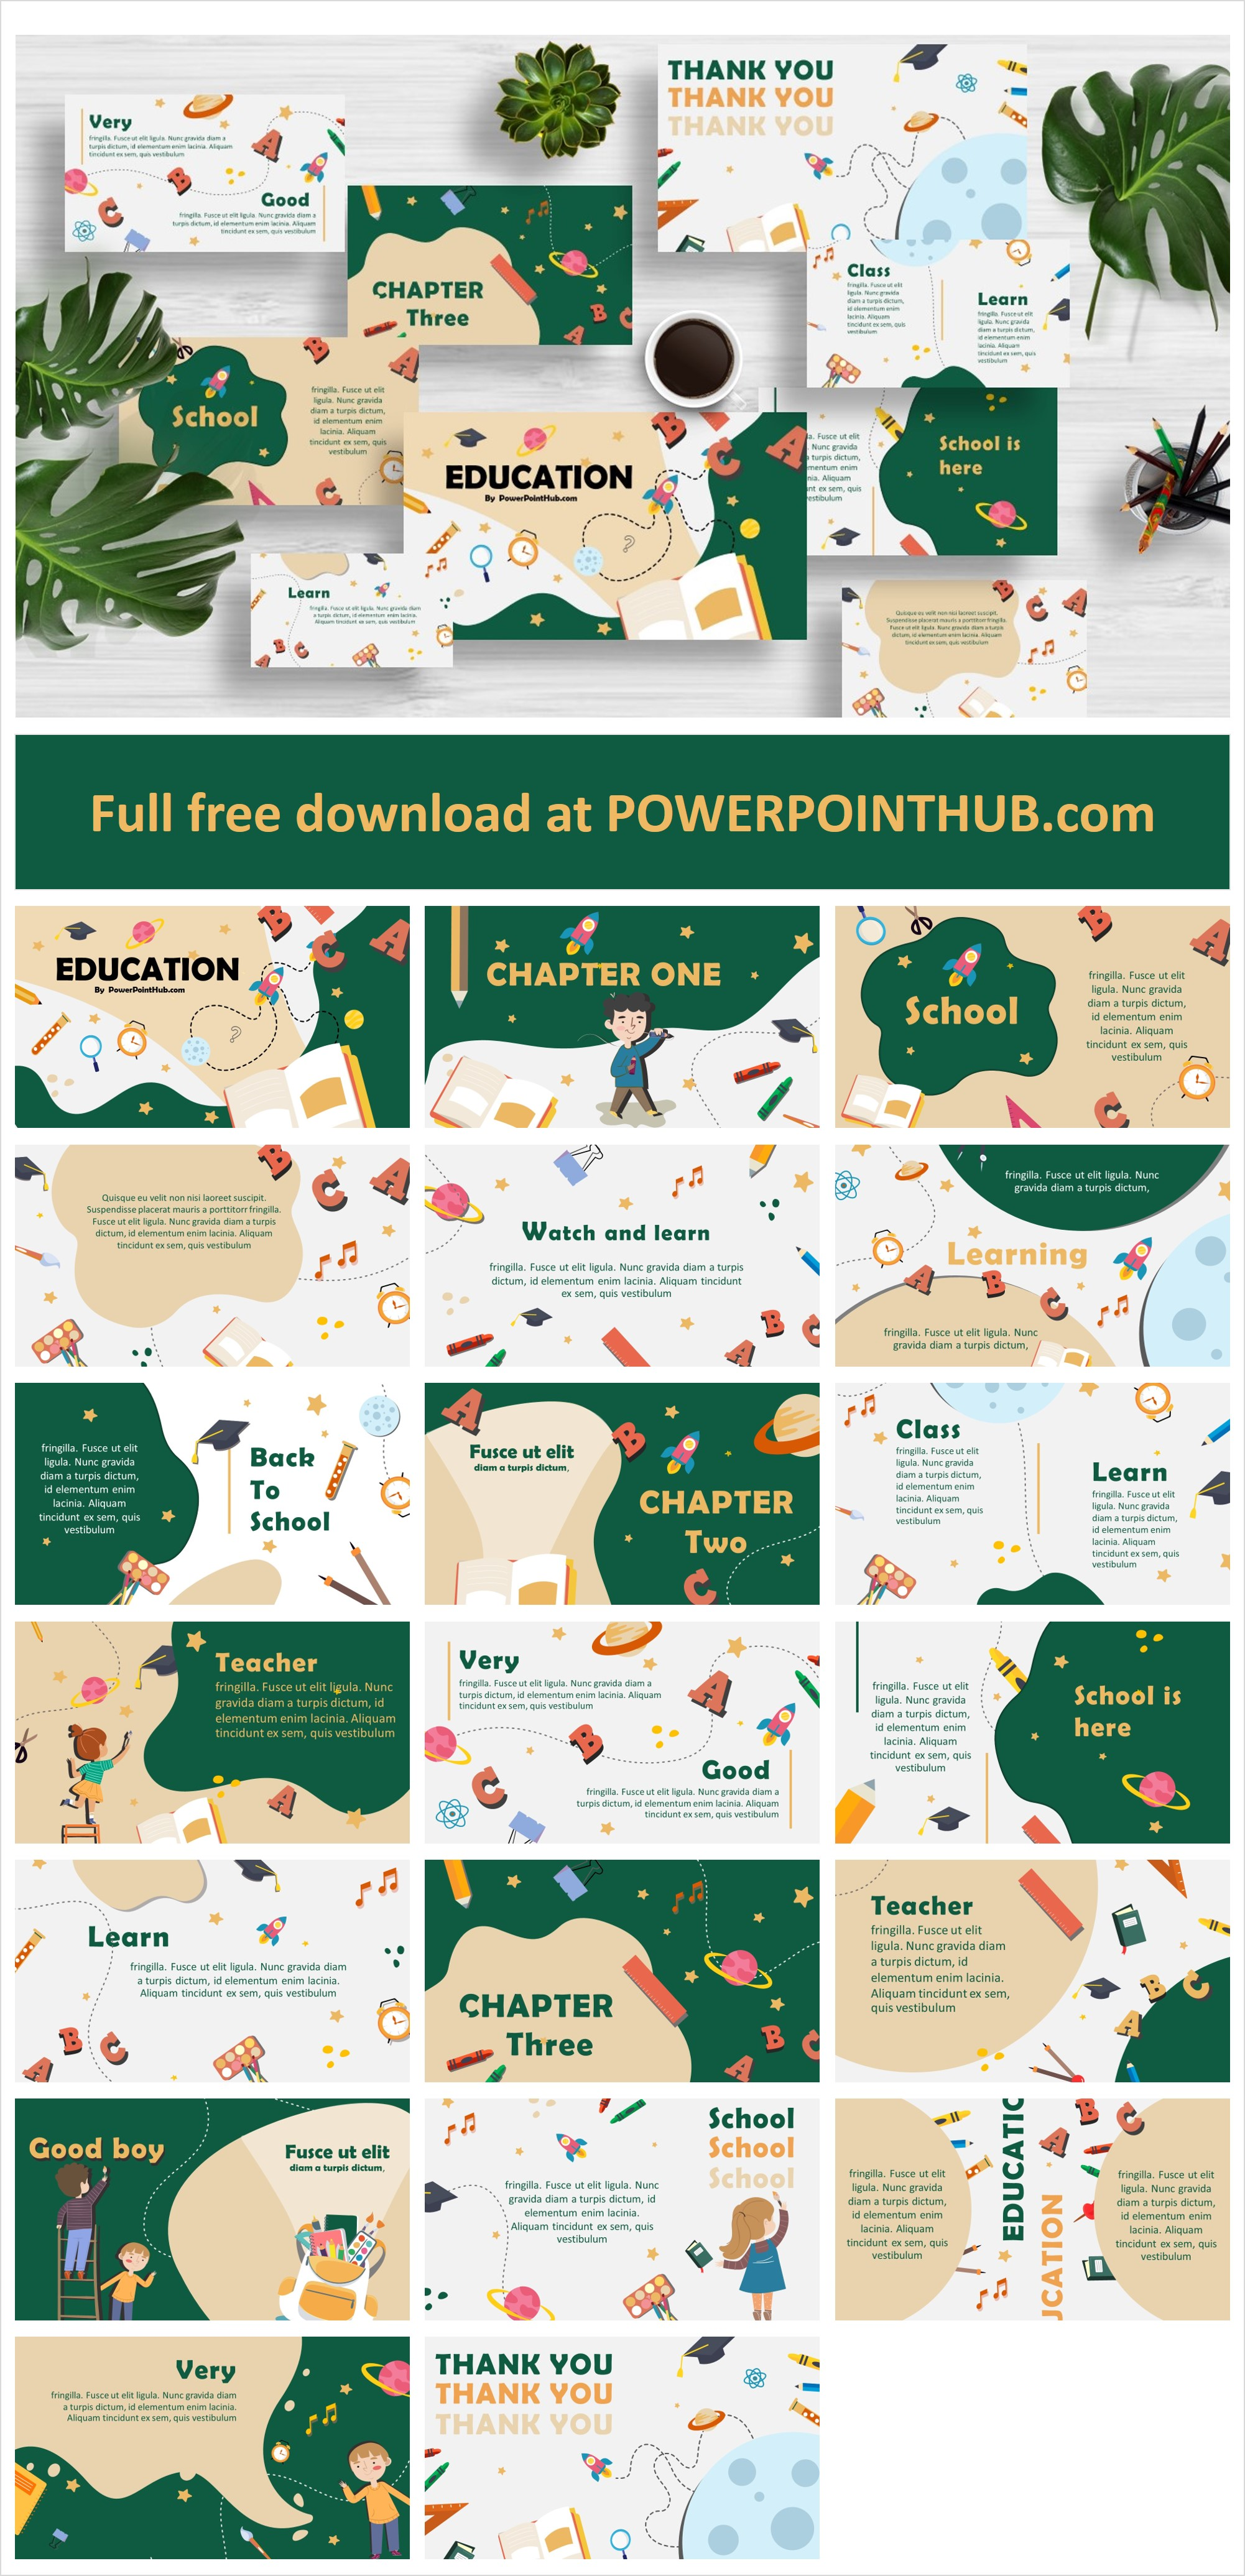 Free Download Best Education PowerPoint Template with cute cartoon objects. This template very useful for both teachers and students.